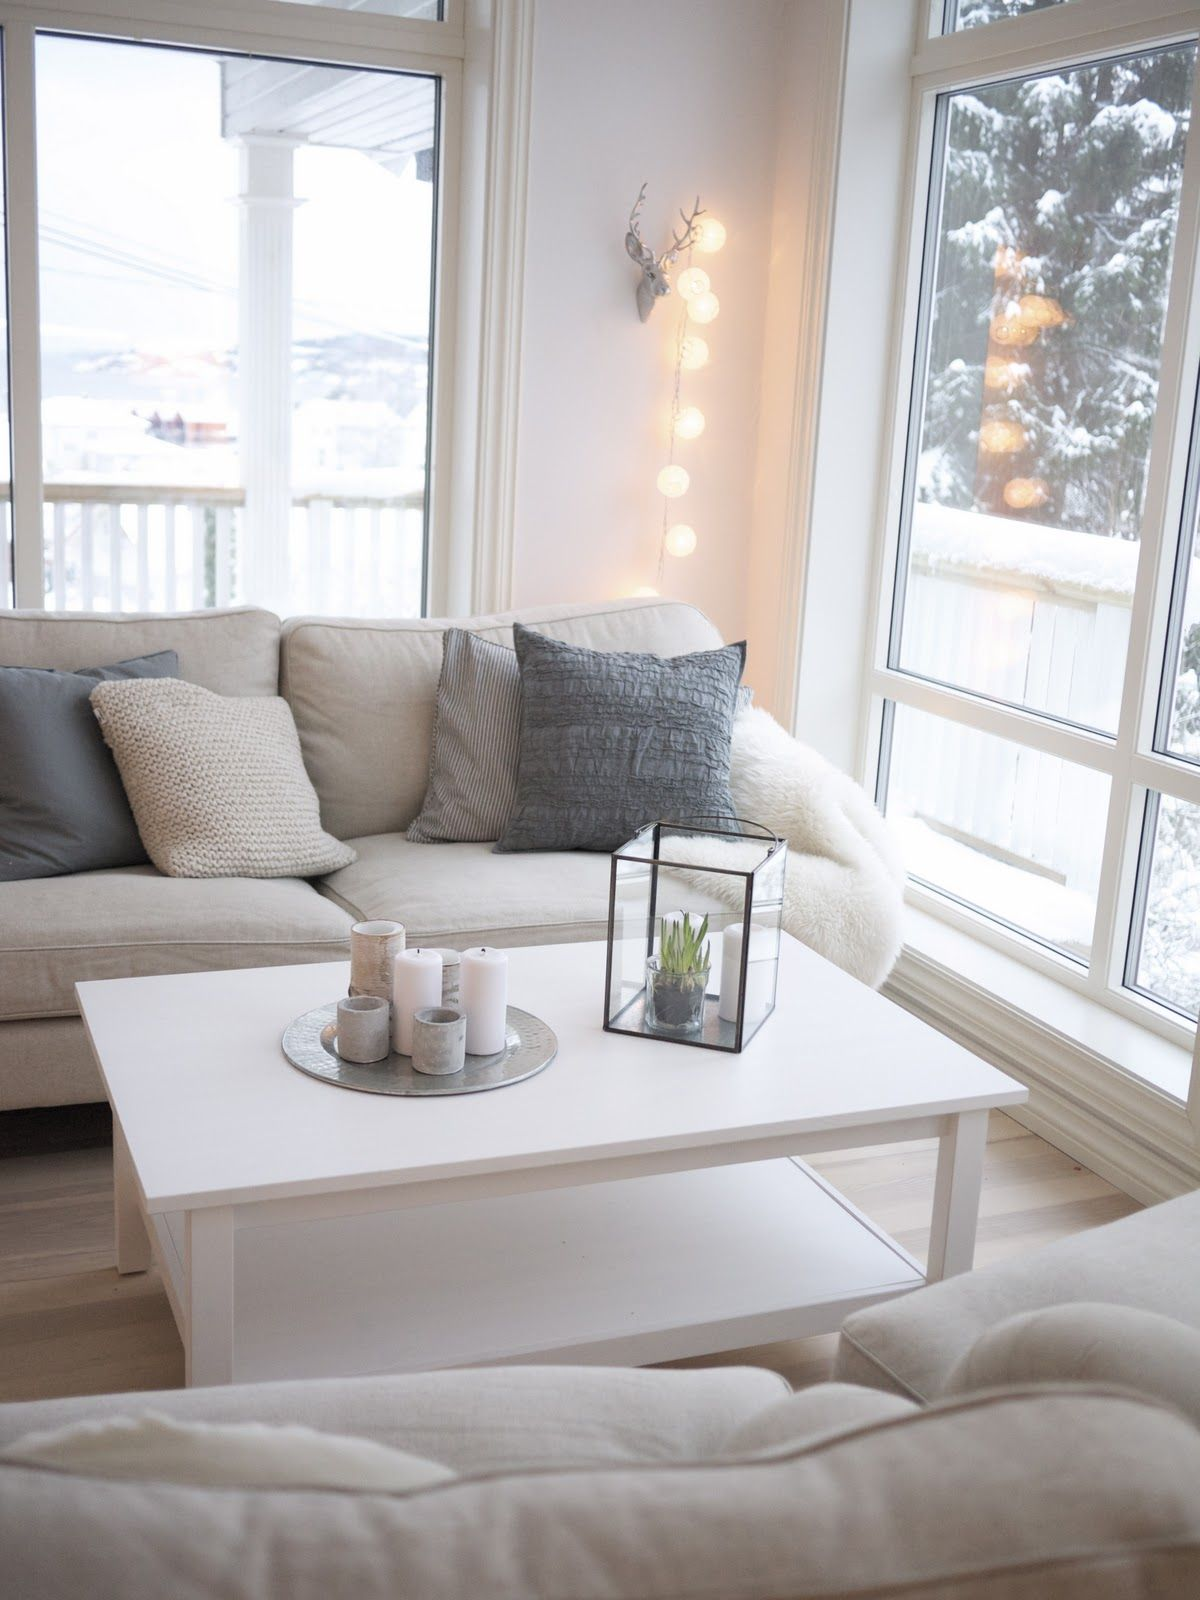 Bedroom Fairy Light Ideas | White couches, Sunroom and Living rooms